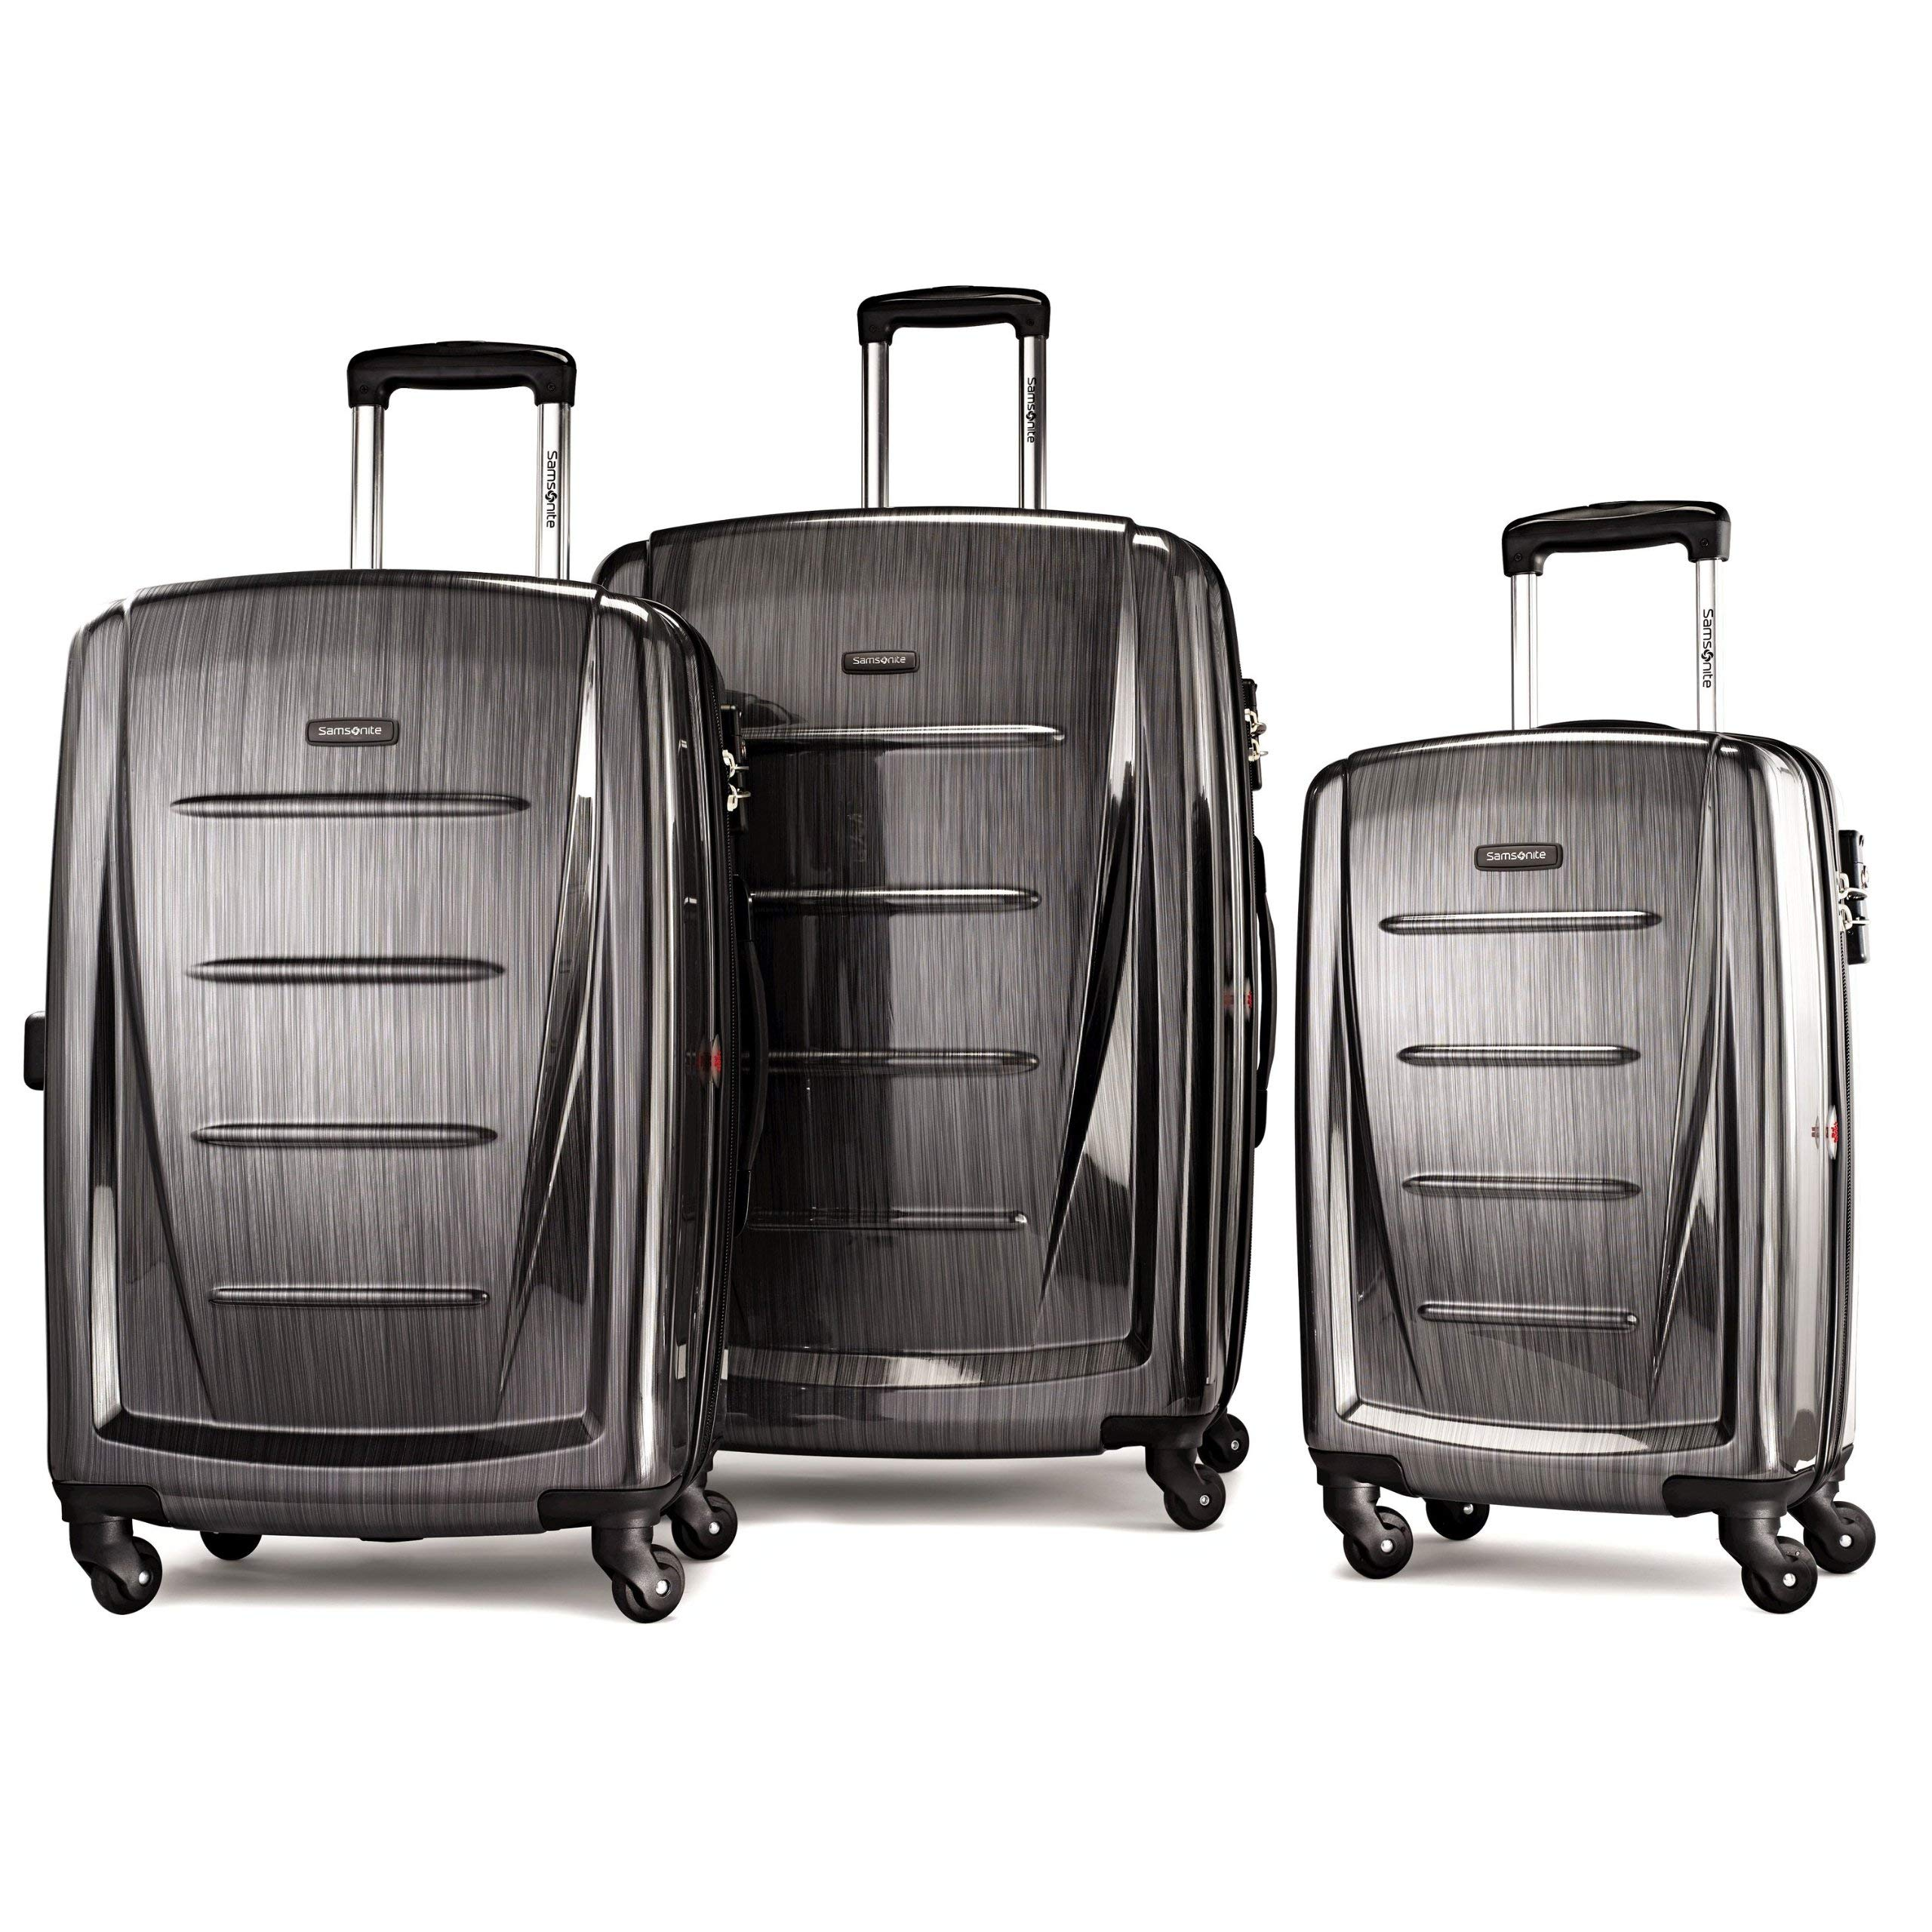 Samsonite Winfield 2 Expandable Hardside Luggage Set with Spinner Wheels, 3-Piece (20/24/28), Charcoal by Samsonite